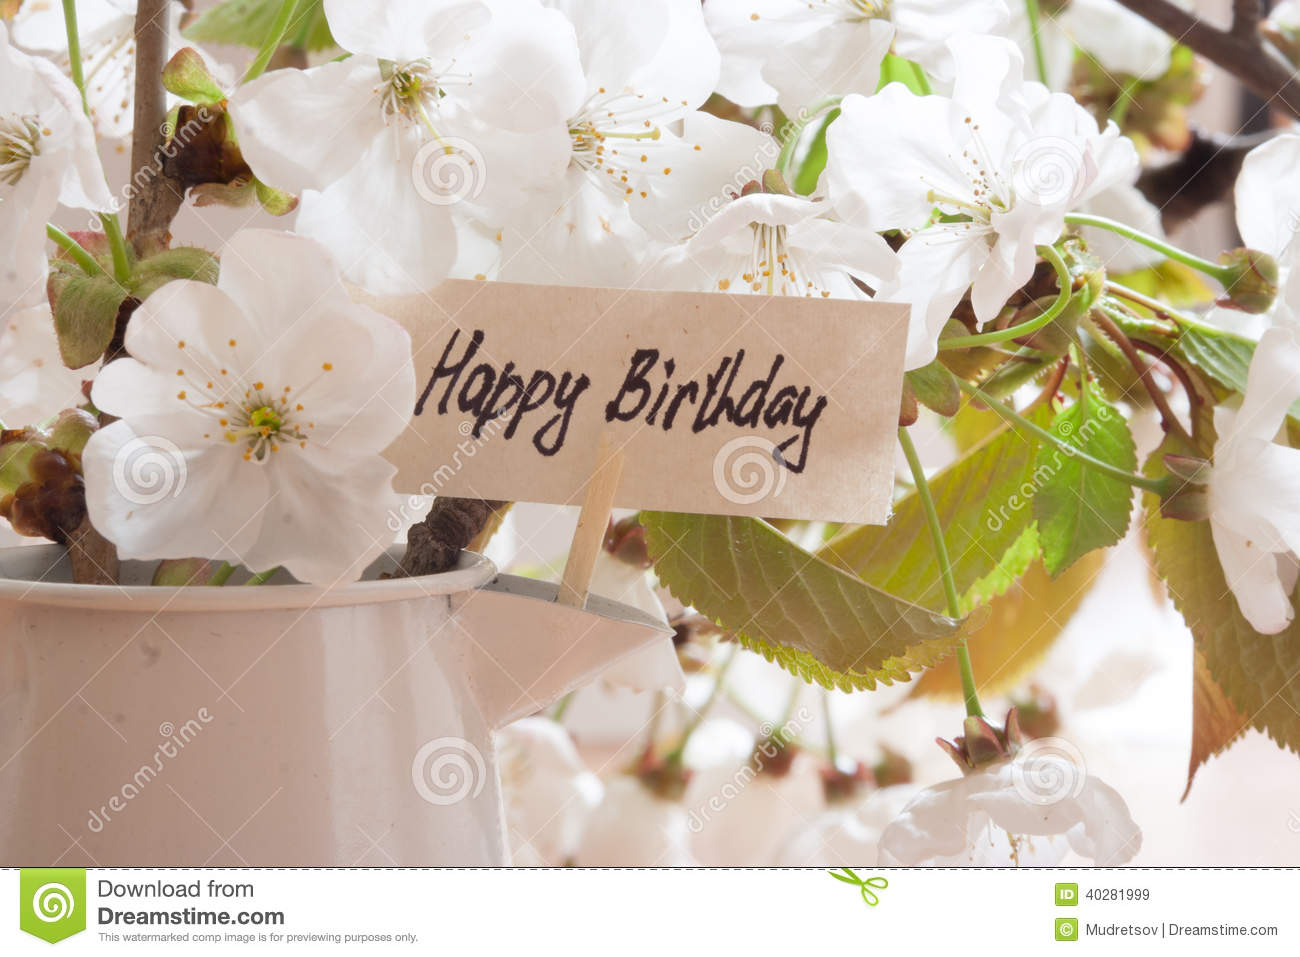 Happy birthday stock image image of birthday text birth 40281999 happy birthday text birth izmirmasajfo Choice Image